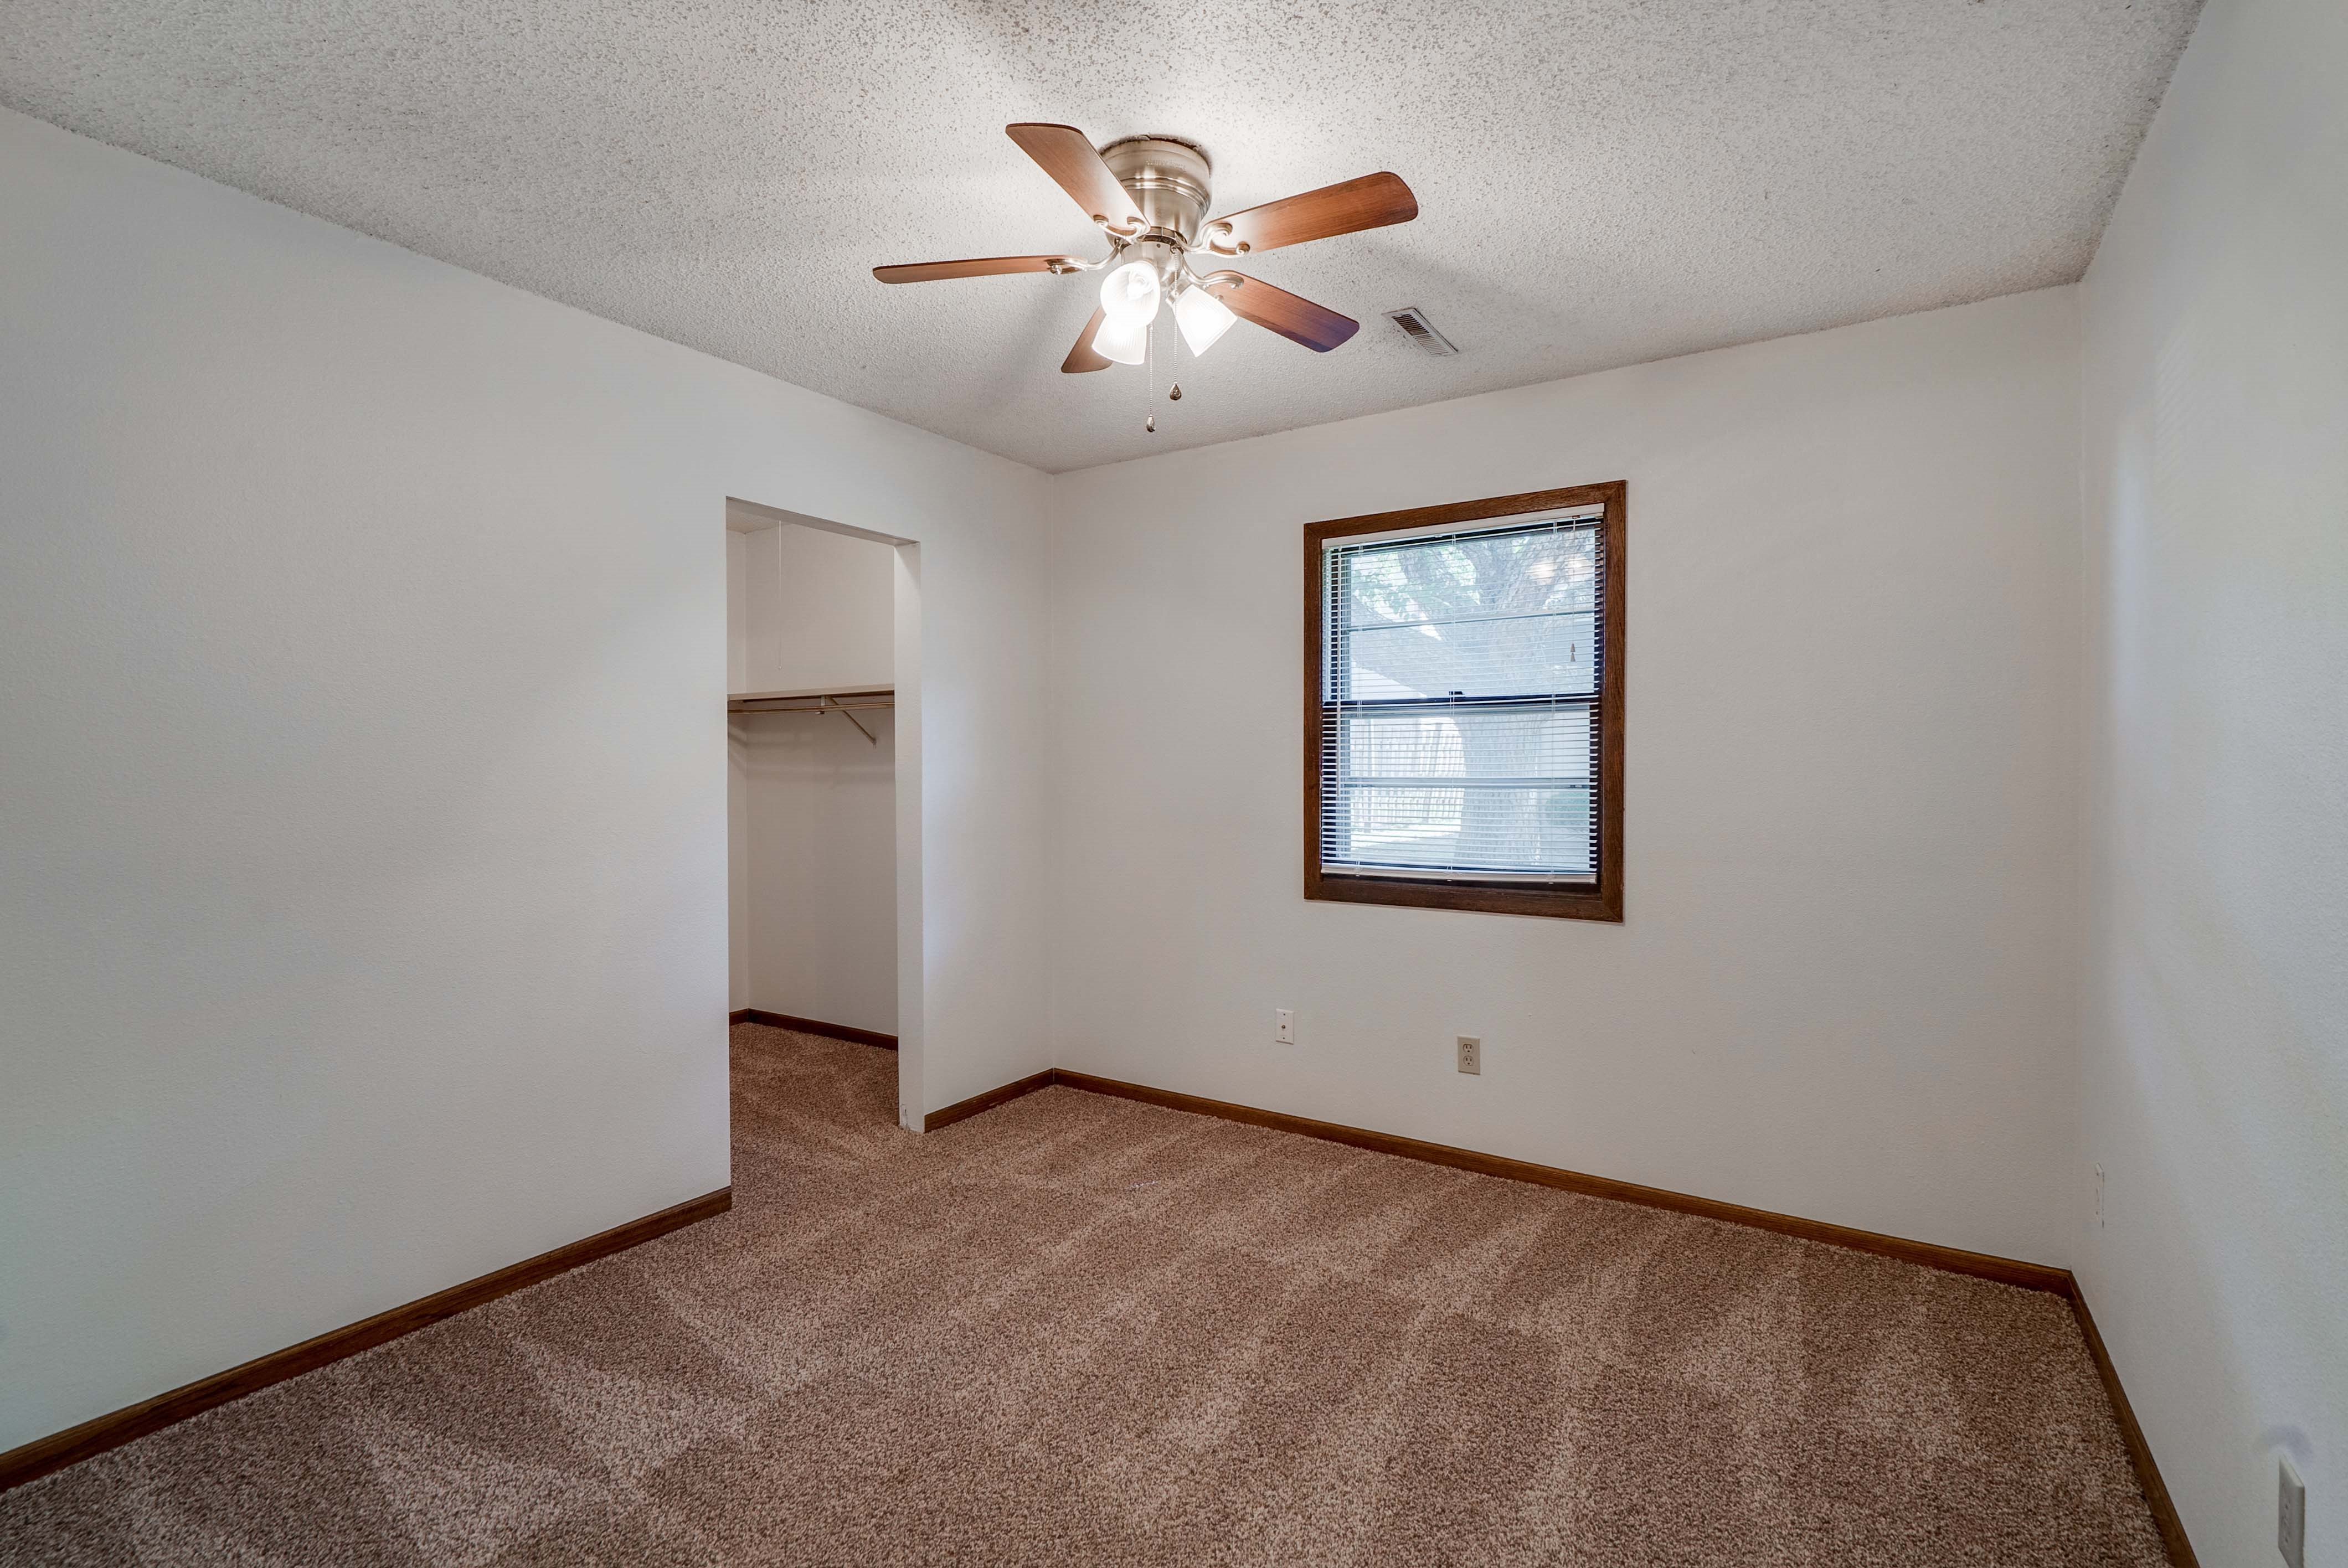 Bedroom with ceiling fan and walk in closet at South View Apartments